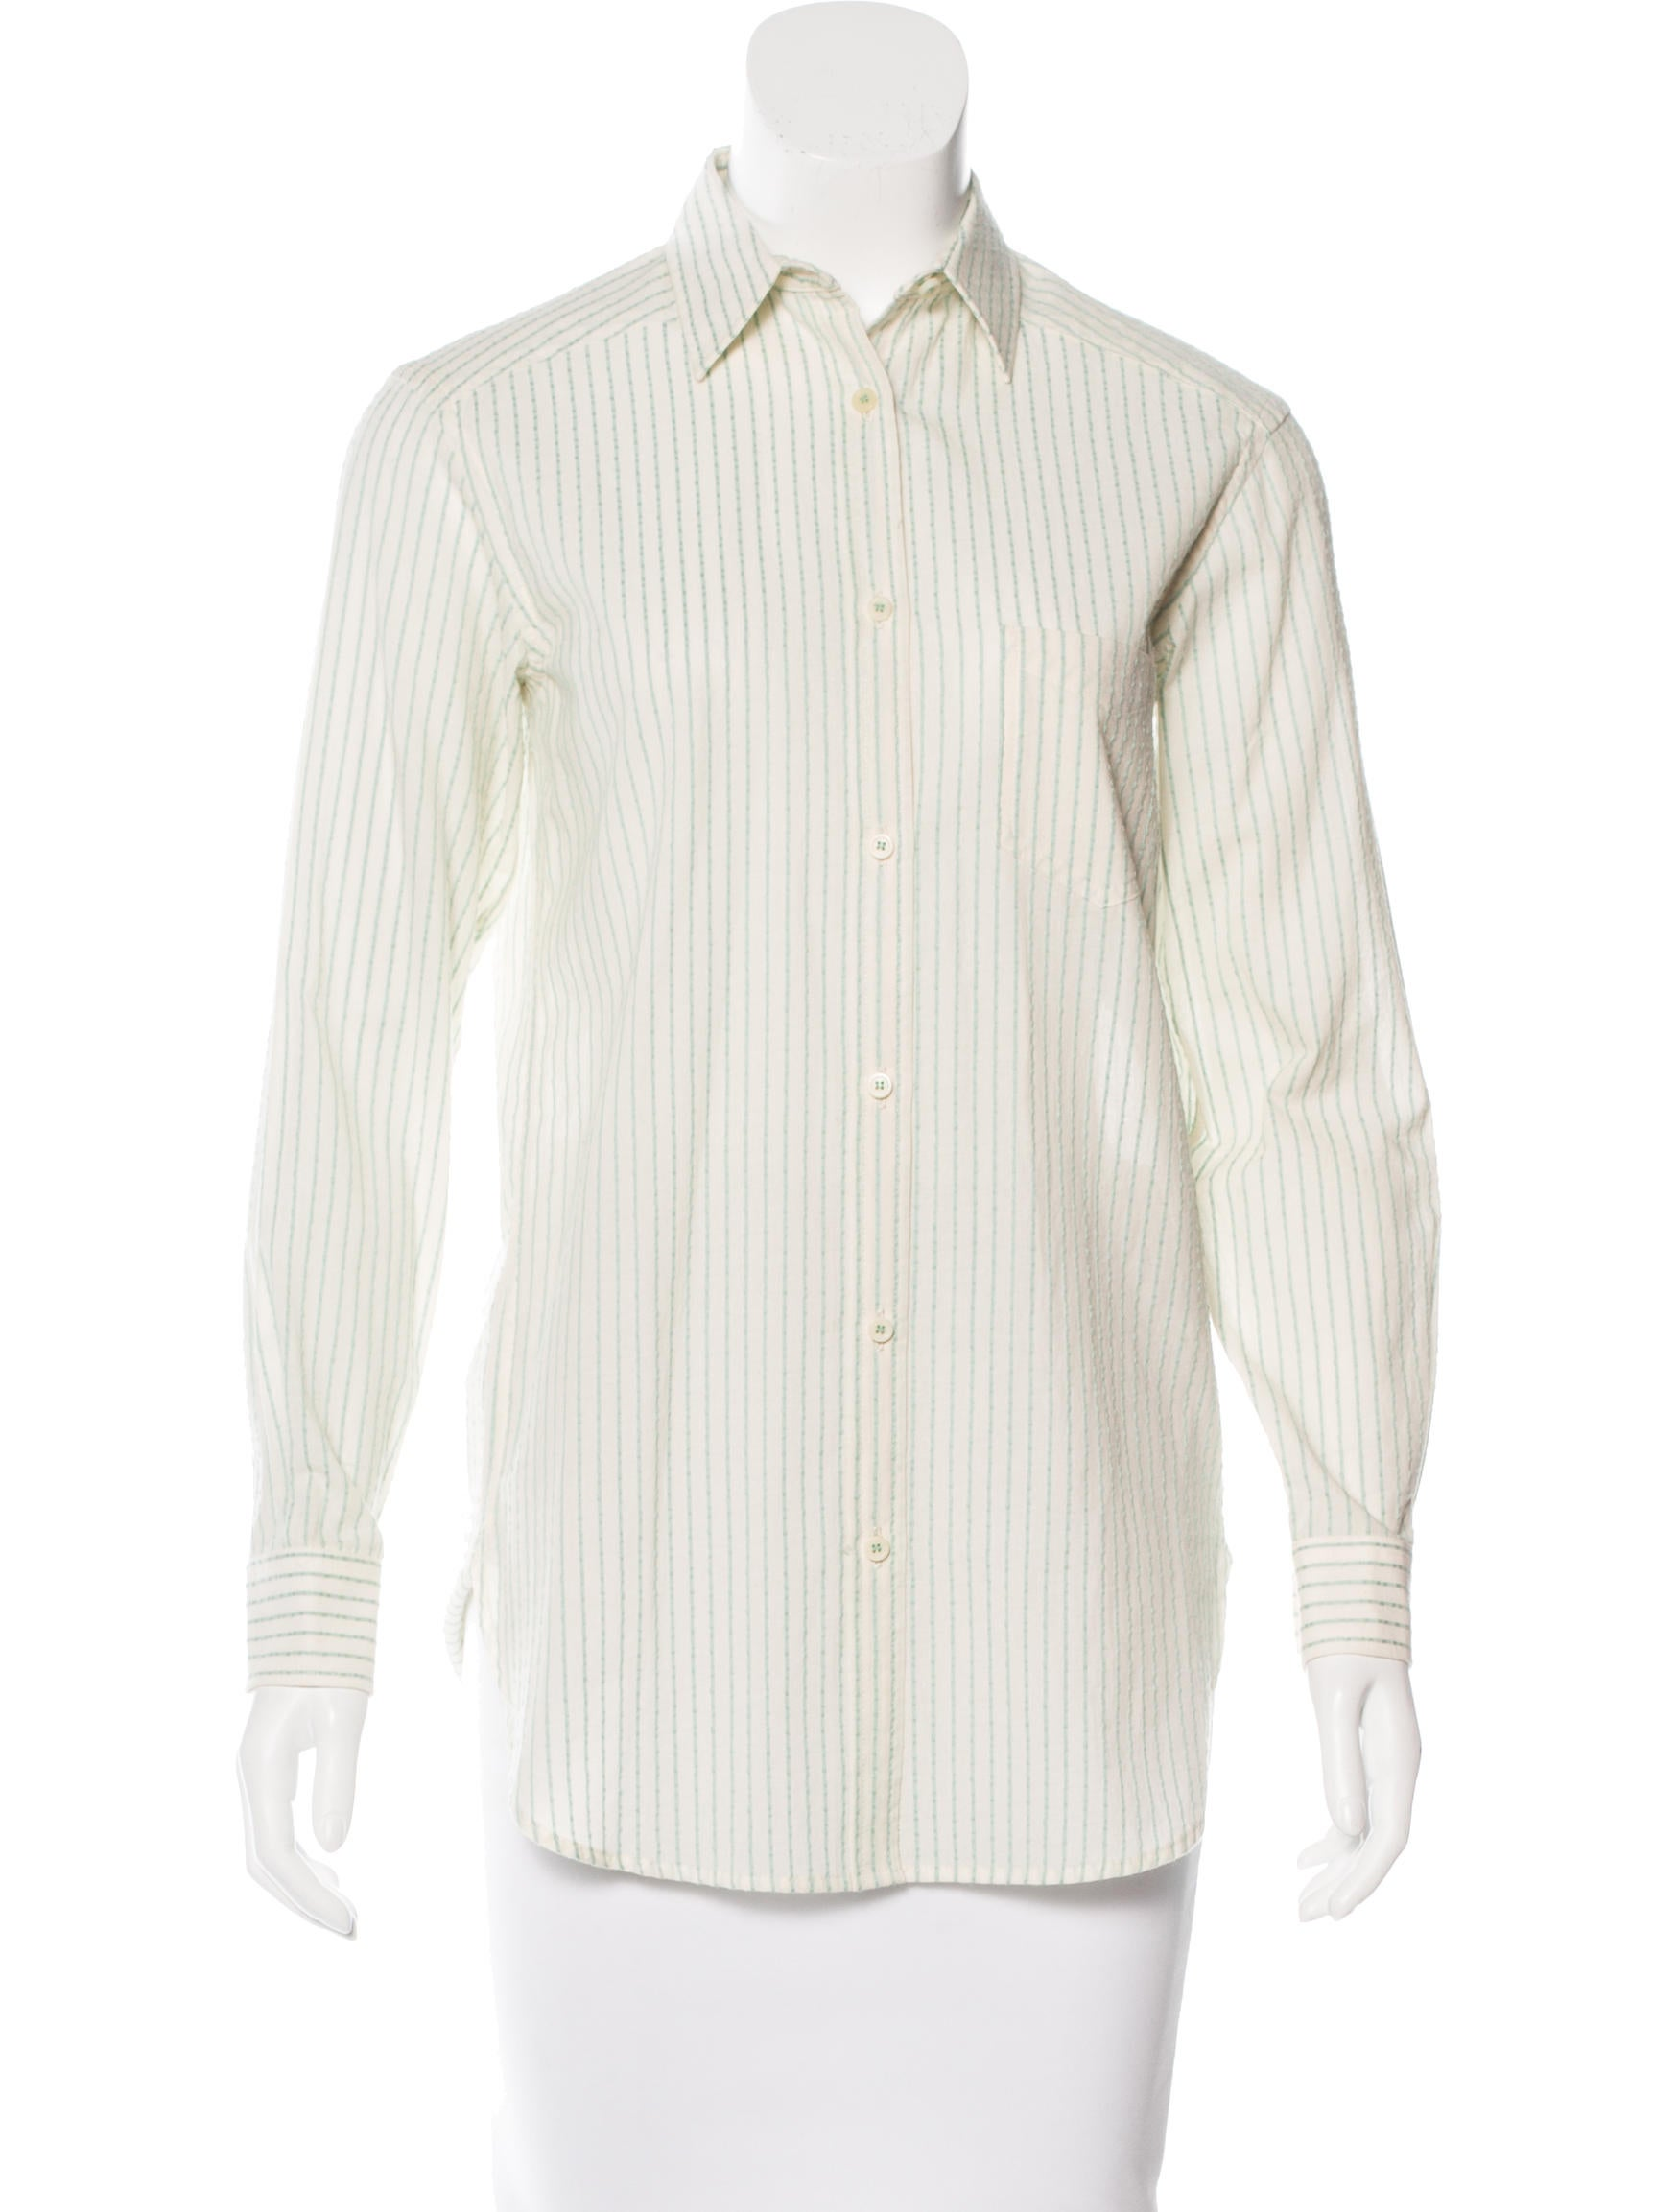 United bamboo striped button up top clothing for Bamboo button down shirts